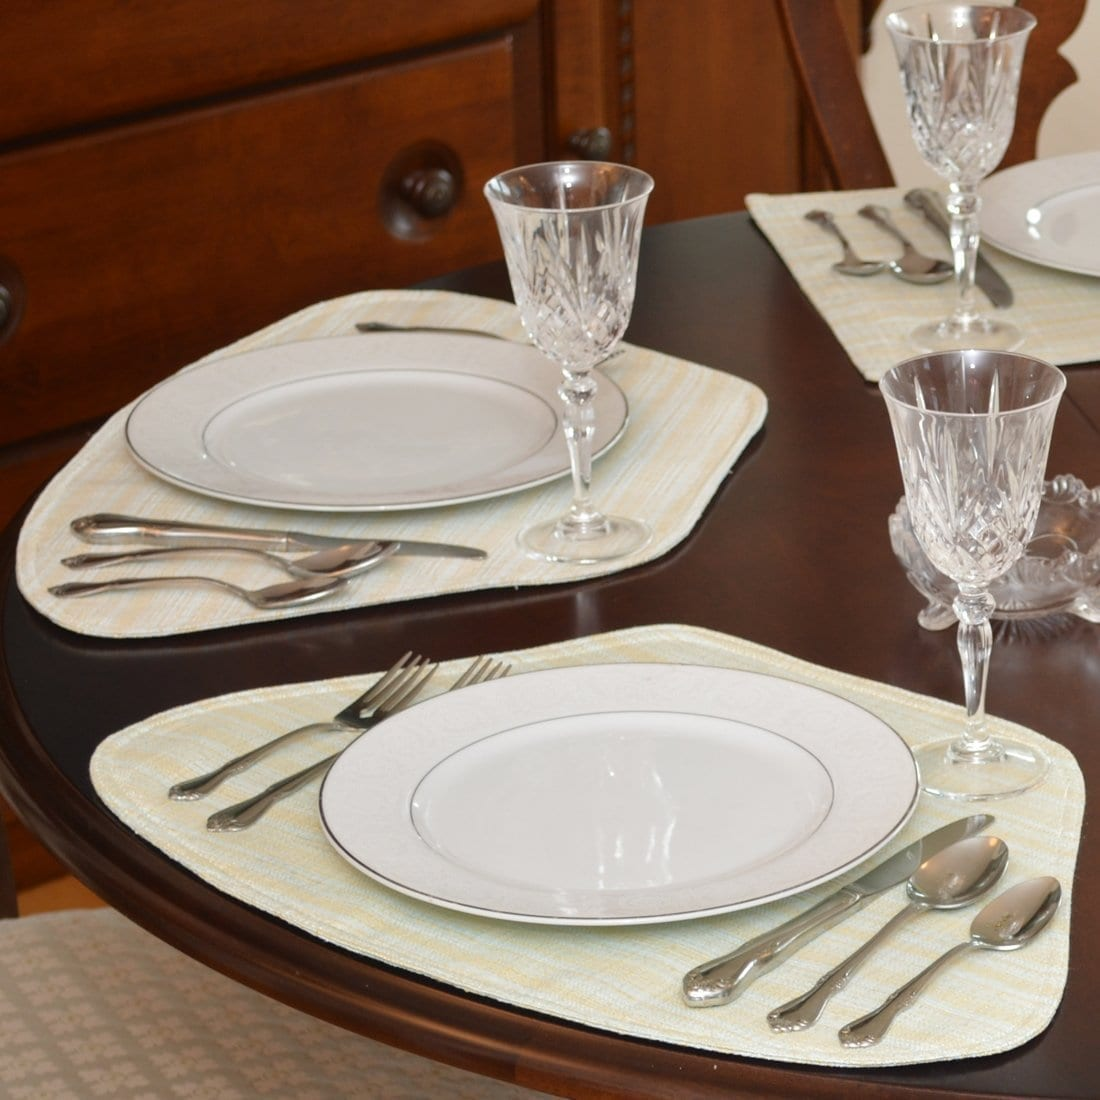 Sweet Pea Linens - Pale Blue Check Textured Wedge-Shaped Placemats - Set of Two (SKU#: RS2-1006-U7) - Table Setting